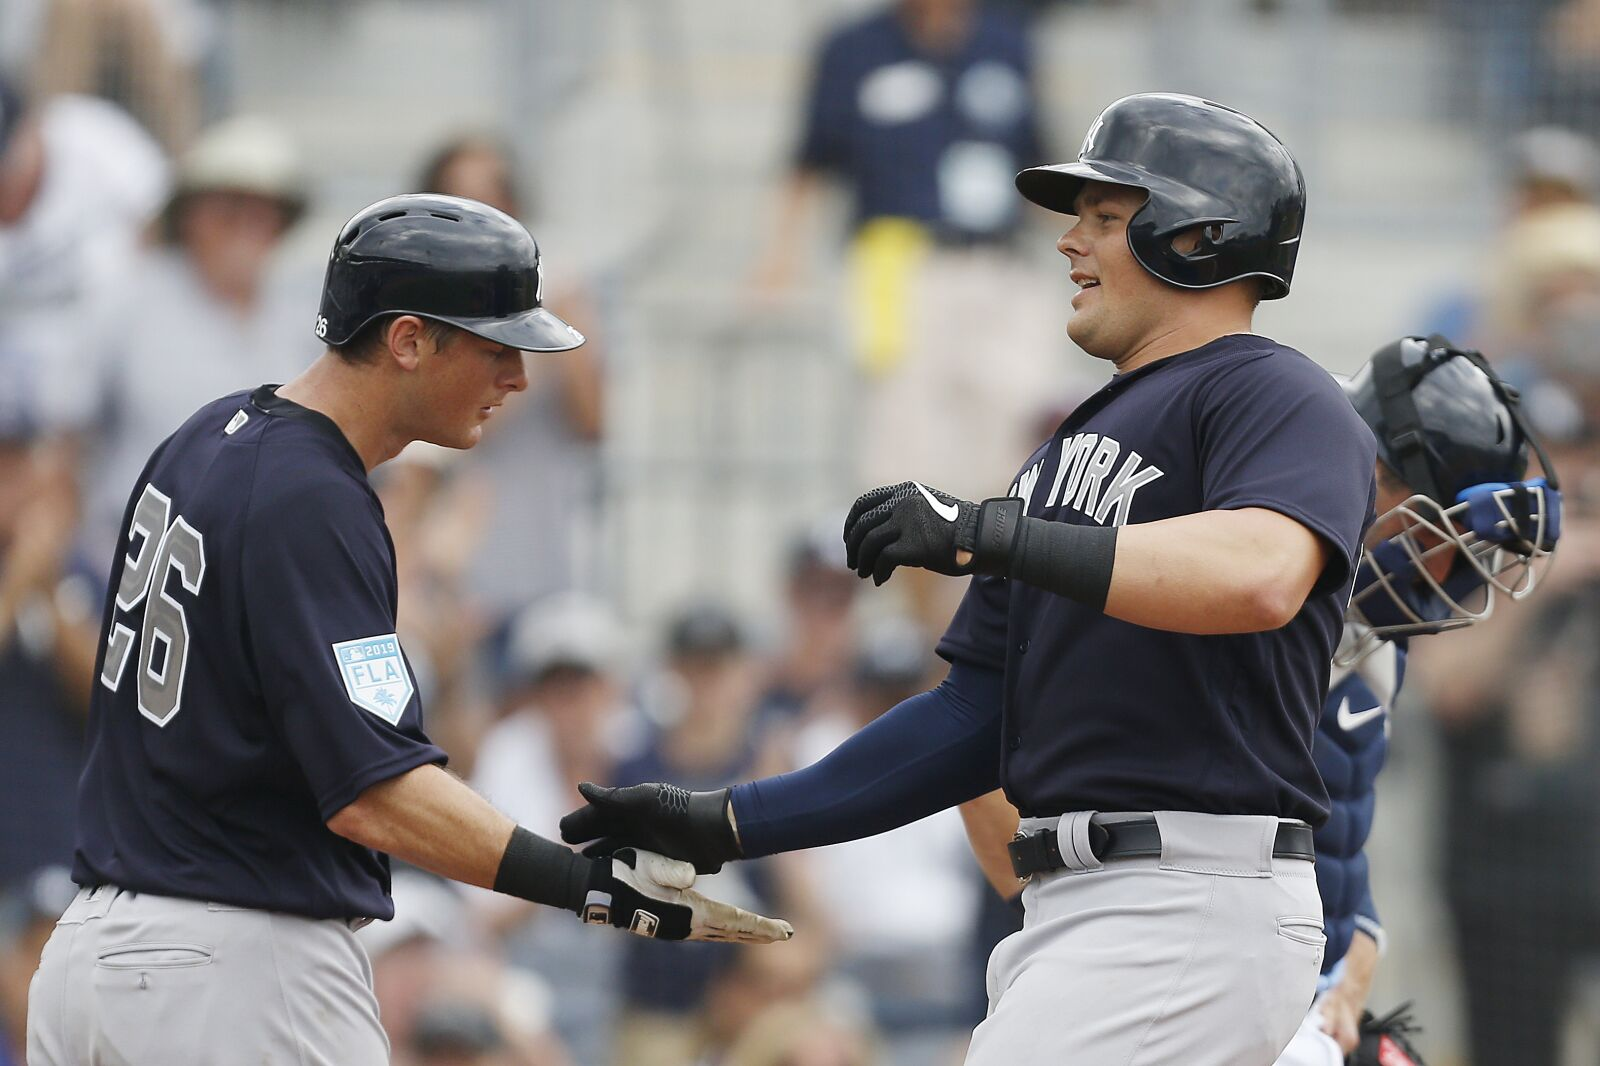 Yankees: Luke Voit can be the everyday first baseman moving forward